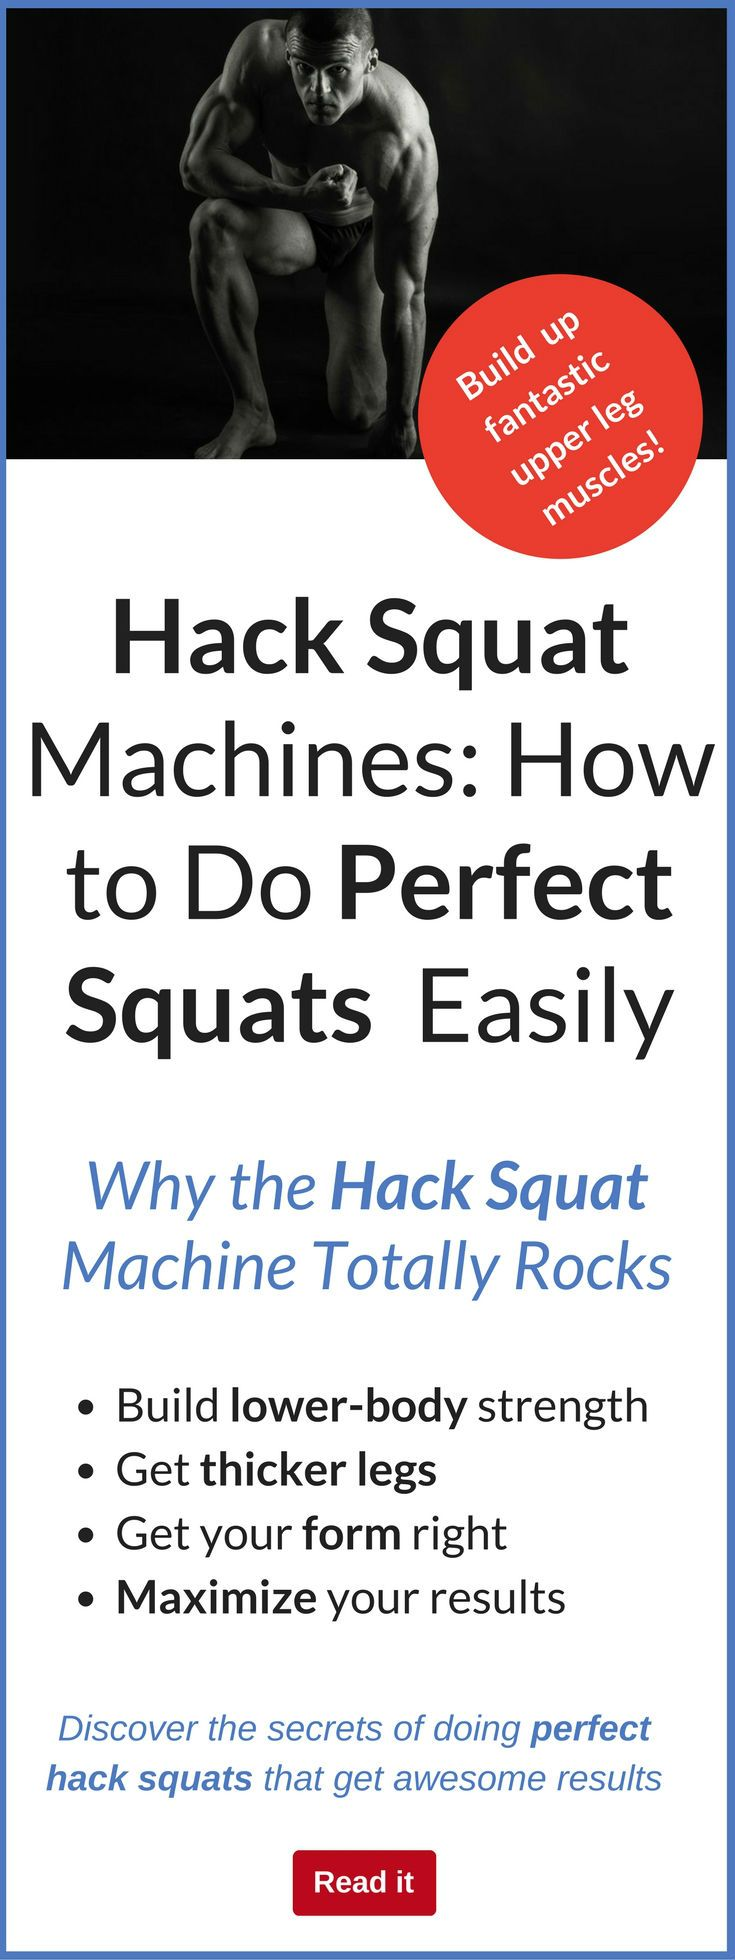 Hack squat machines are a great option if you want to improve the tone and strength of your upper leg muscles. This article gives you great insights into the way to do them with correct form. Read it to see how you can build amazing legs, too.